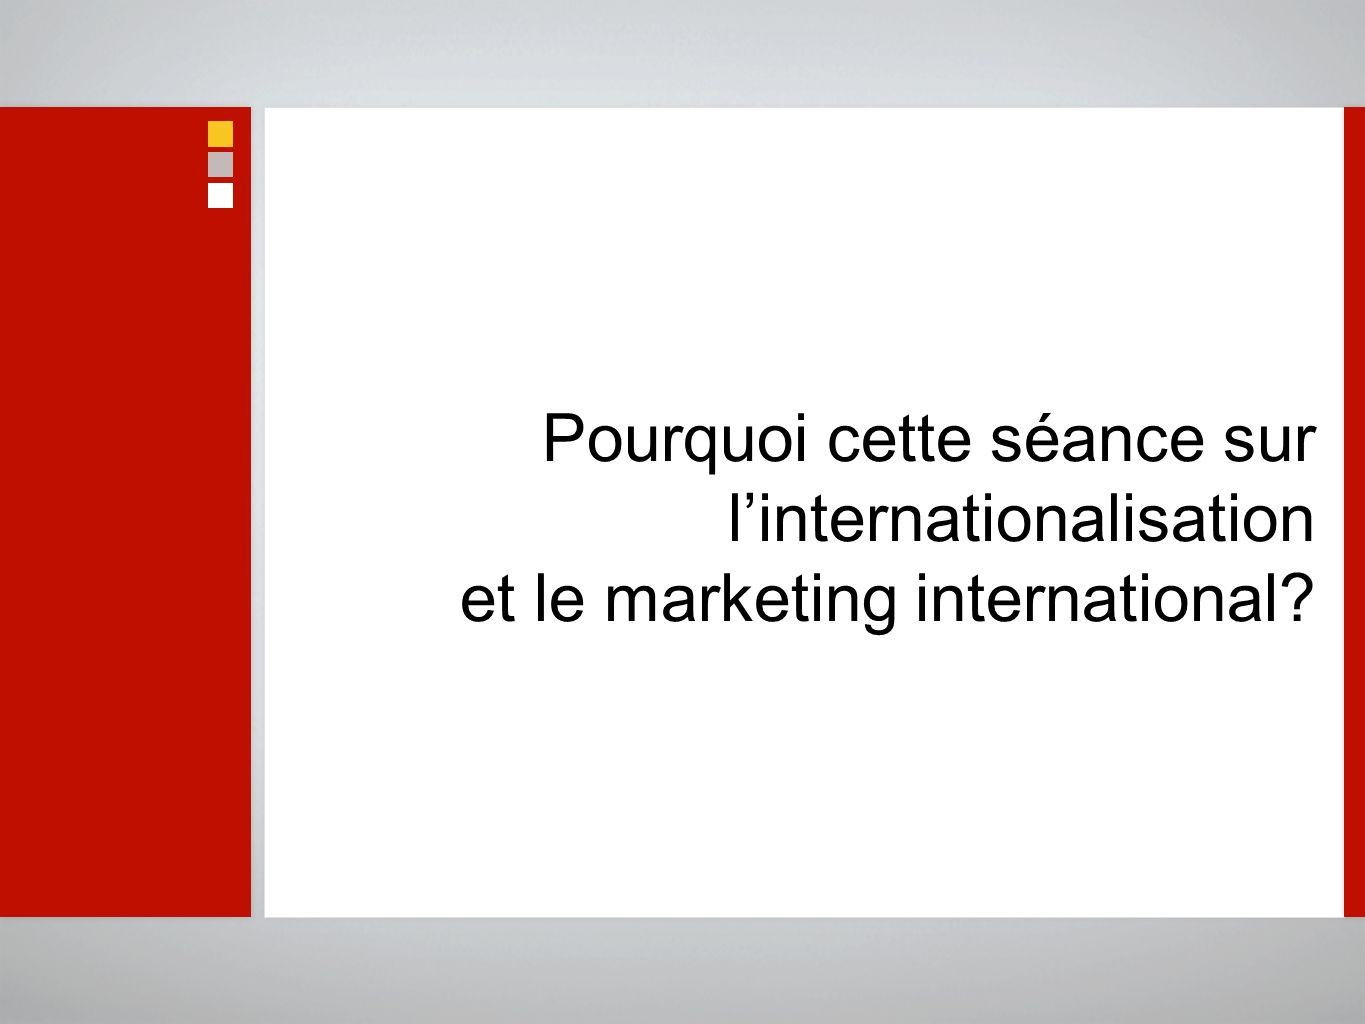 Pourquoi cette séance sur l'internationalisation et le marketing international